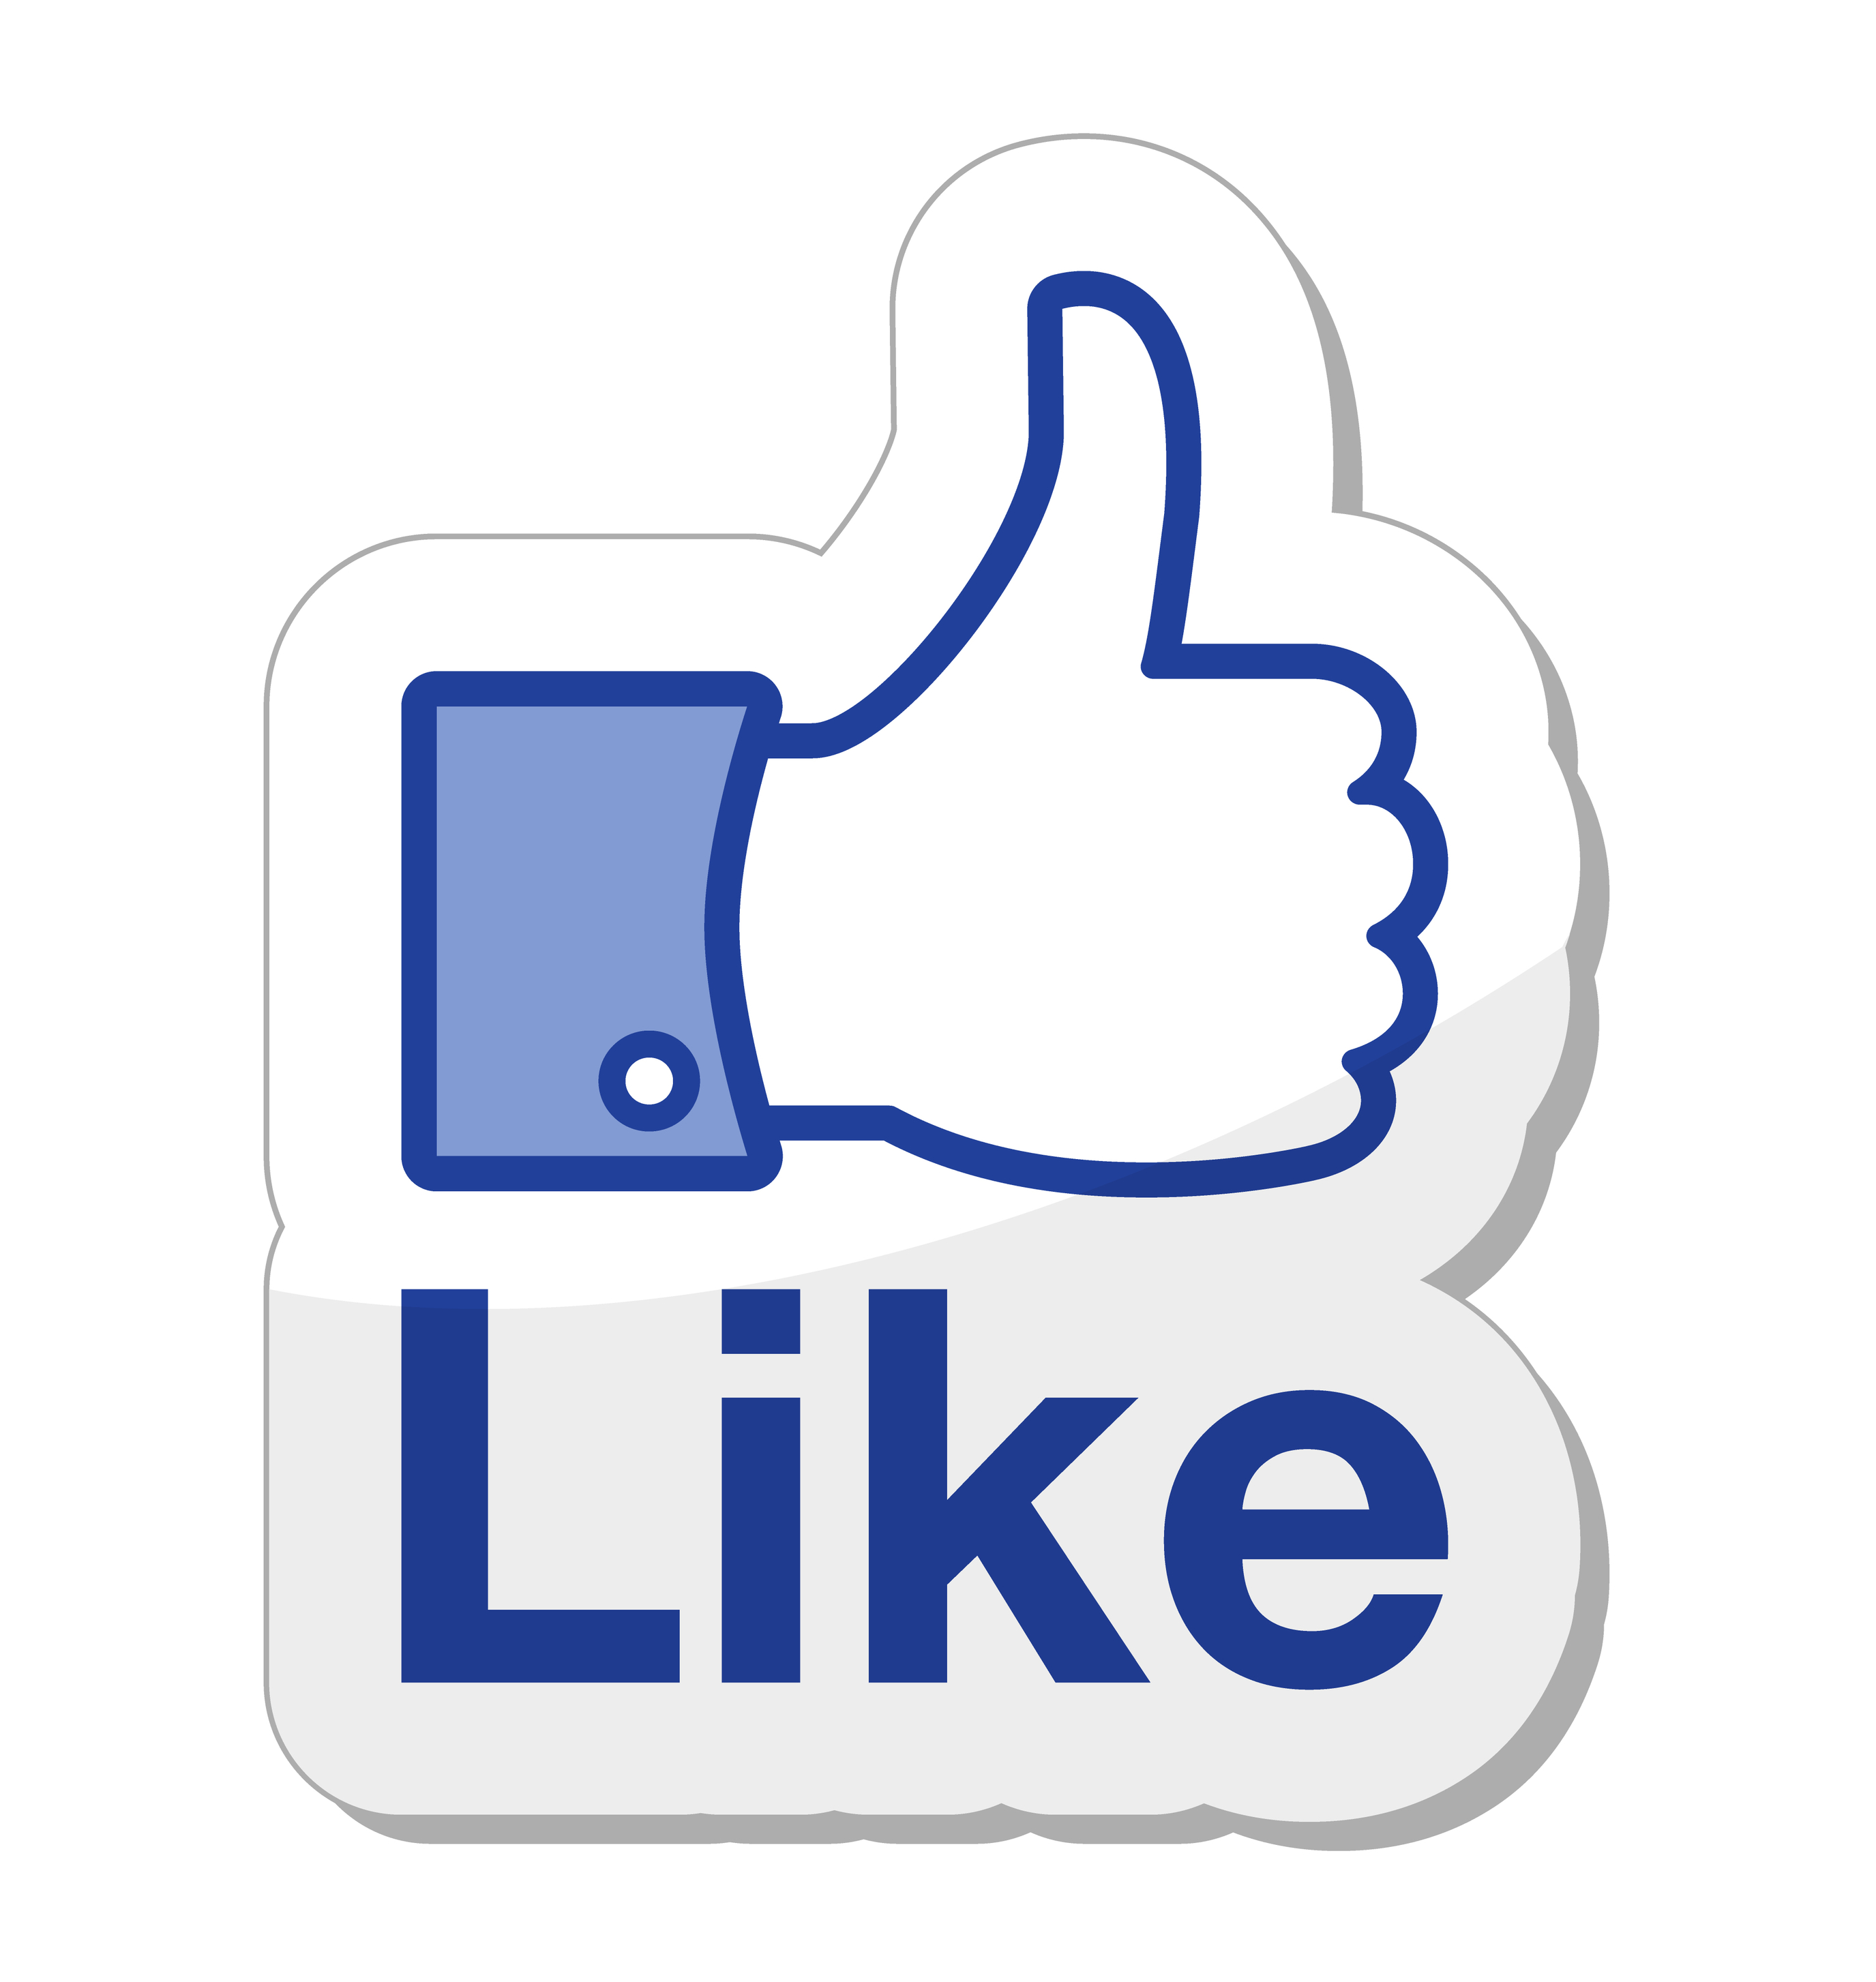 increase your presence on Facebook 100 likes